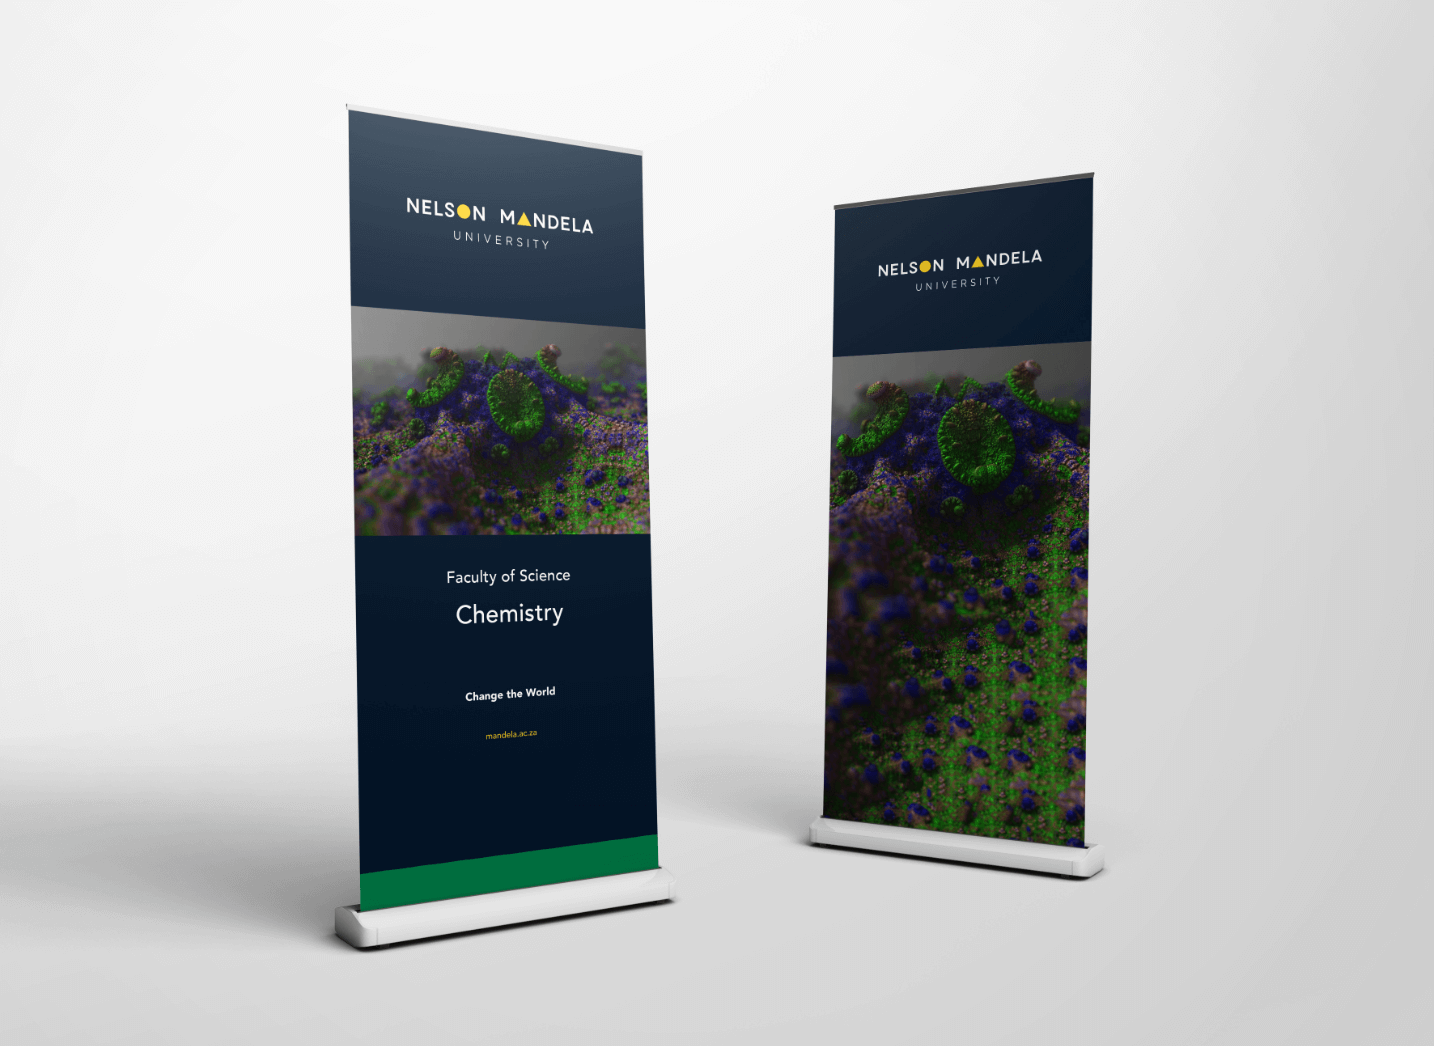 Creative Caterpillar client Nelson Mandela University pull up banners.